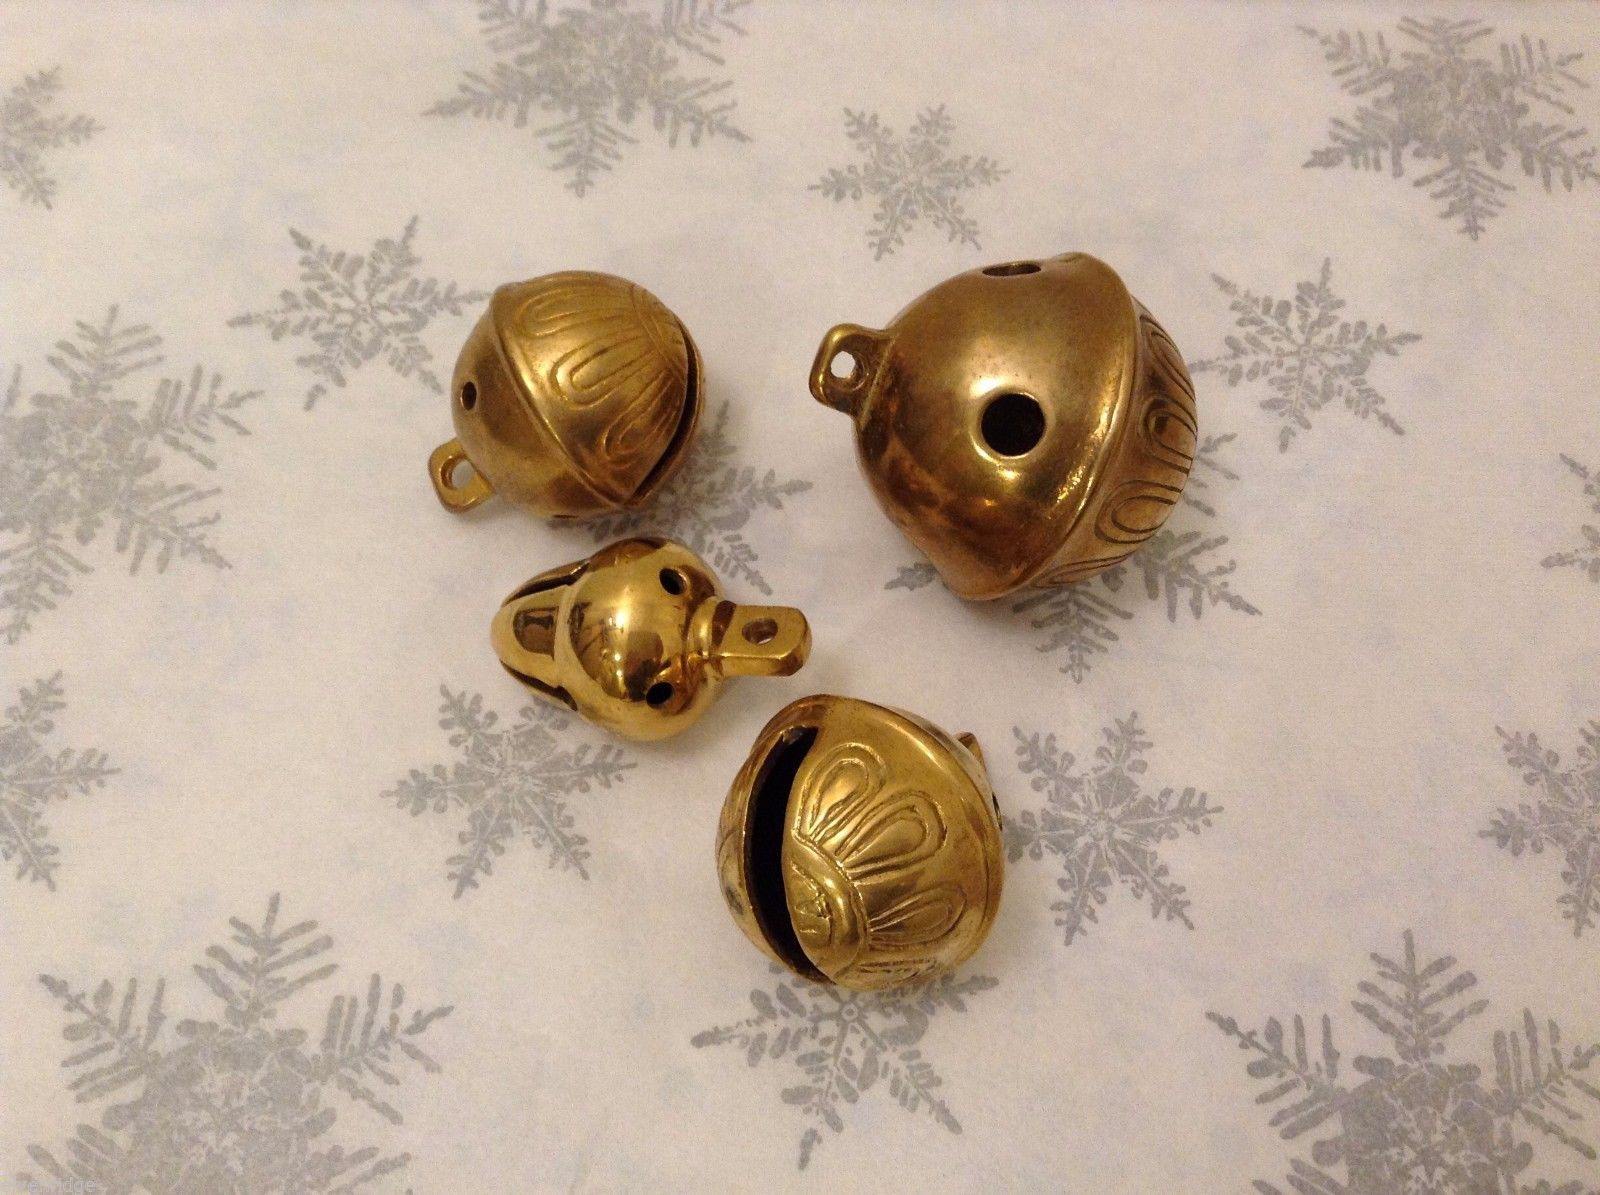 Polar Gold Brass Lot of 4 Santa Sleigh bells GREAT for Xmas Morning surprise